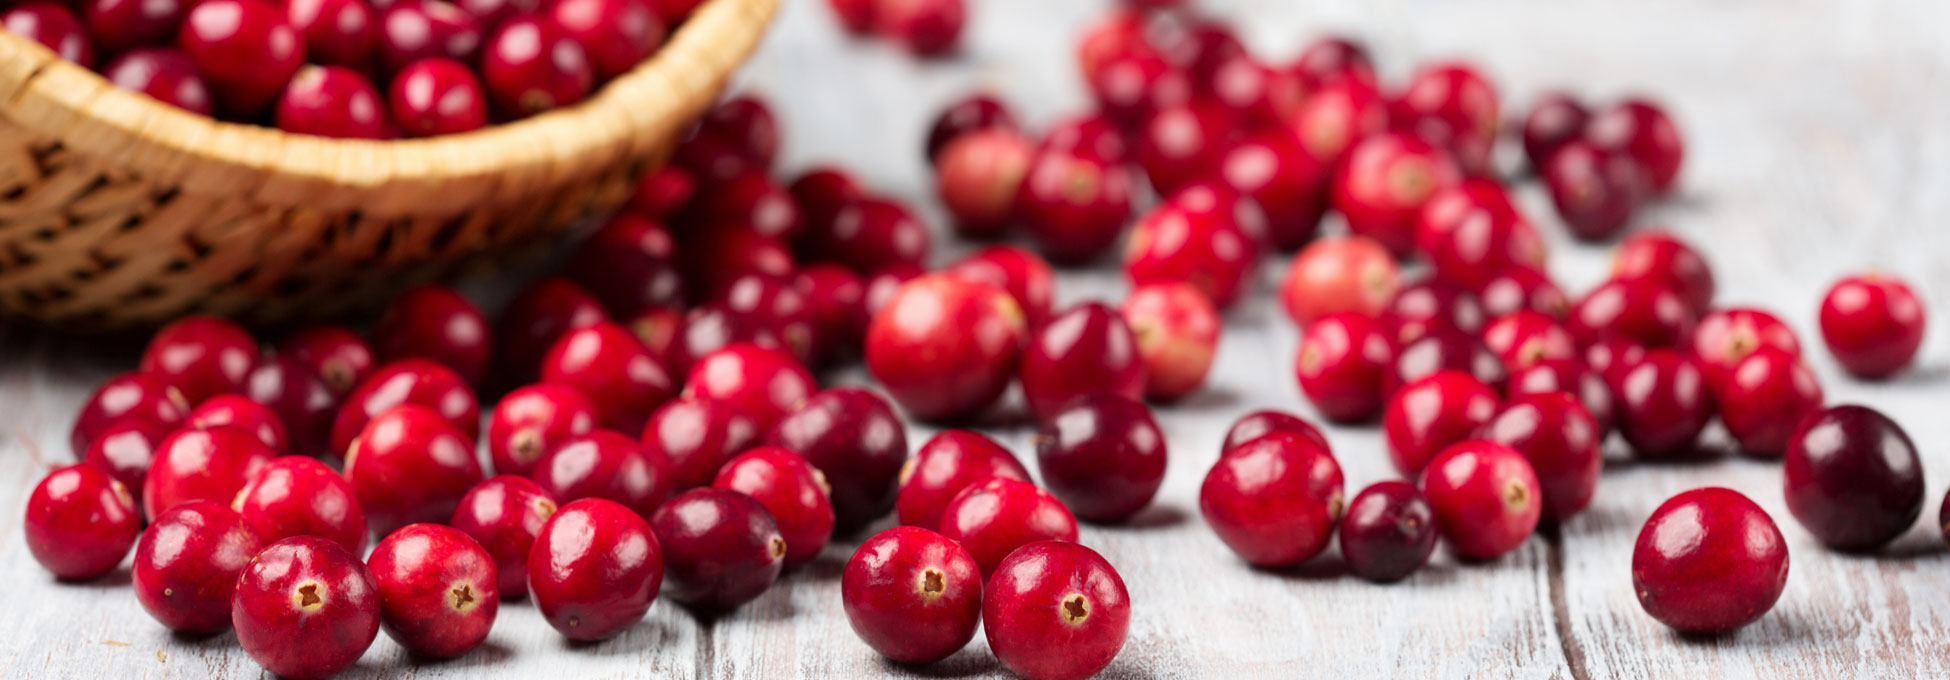 trigs-homepg-cranberries-hires.jpg